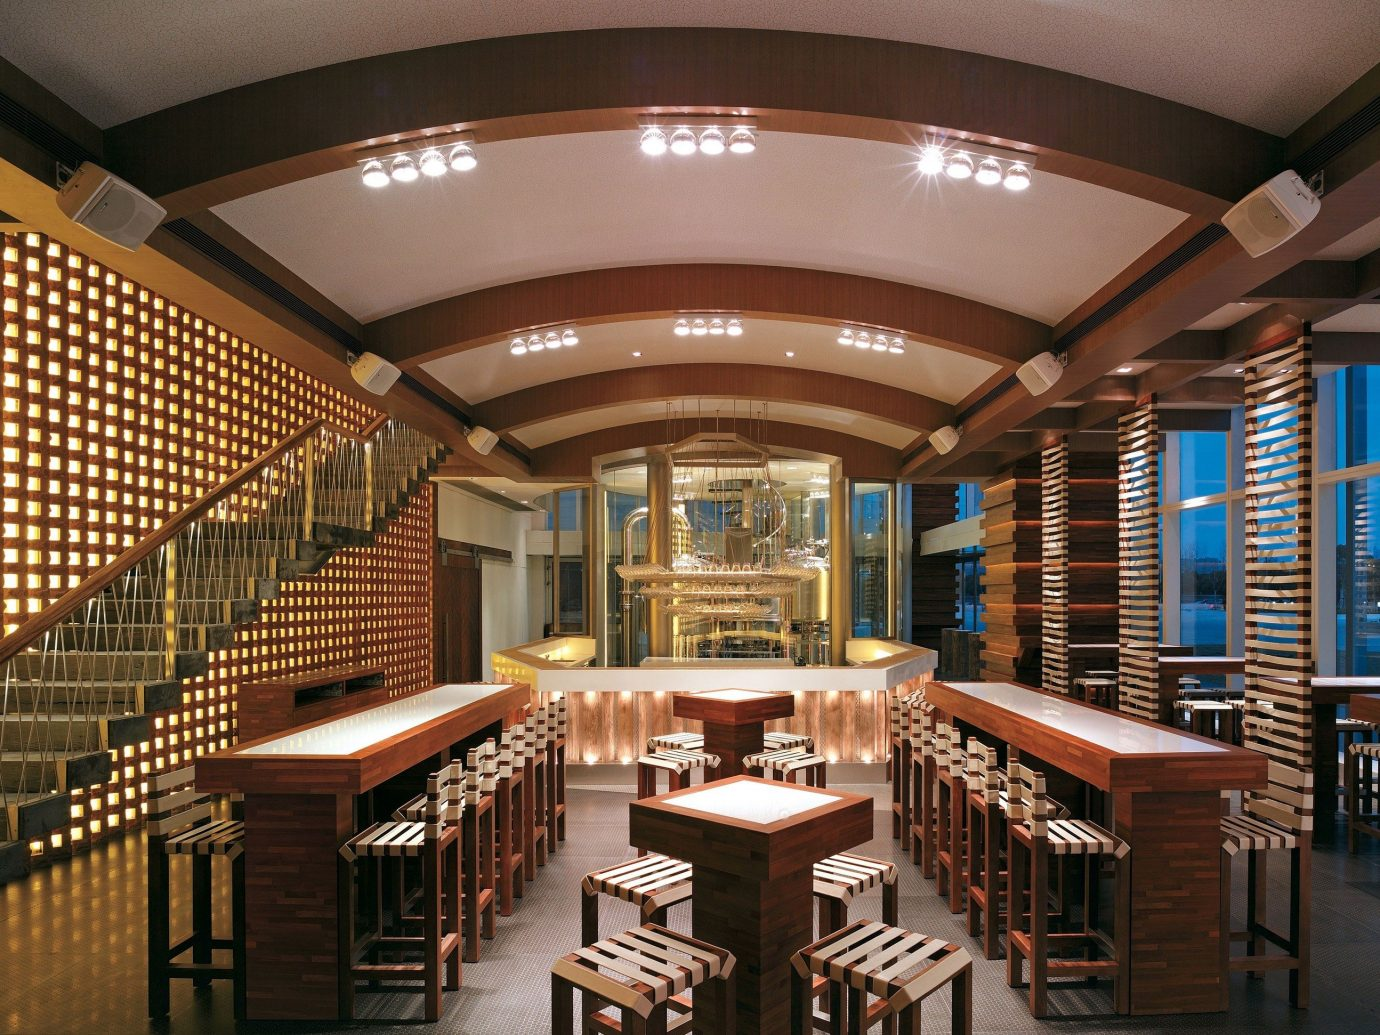 Food + Drink indoor ceiling floor library building auditorium Lobby interior design convention center conference hall estate furniture